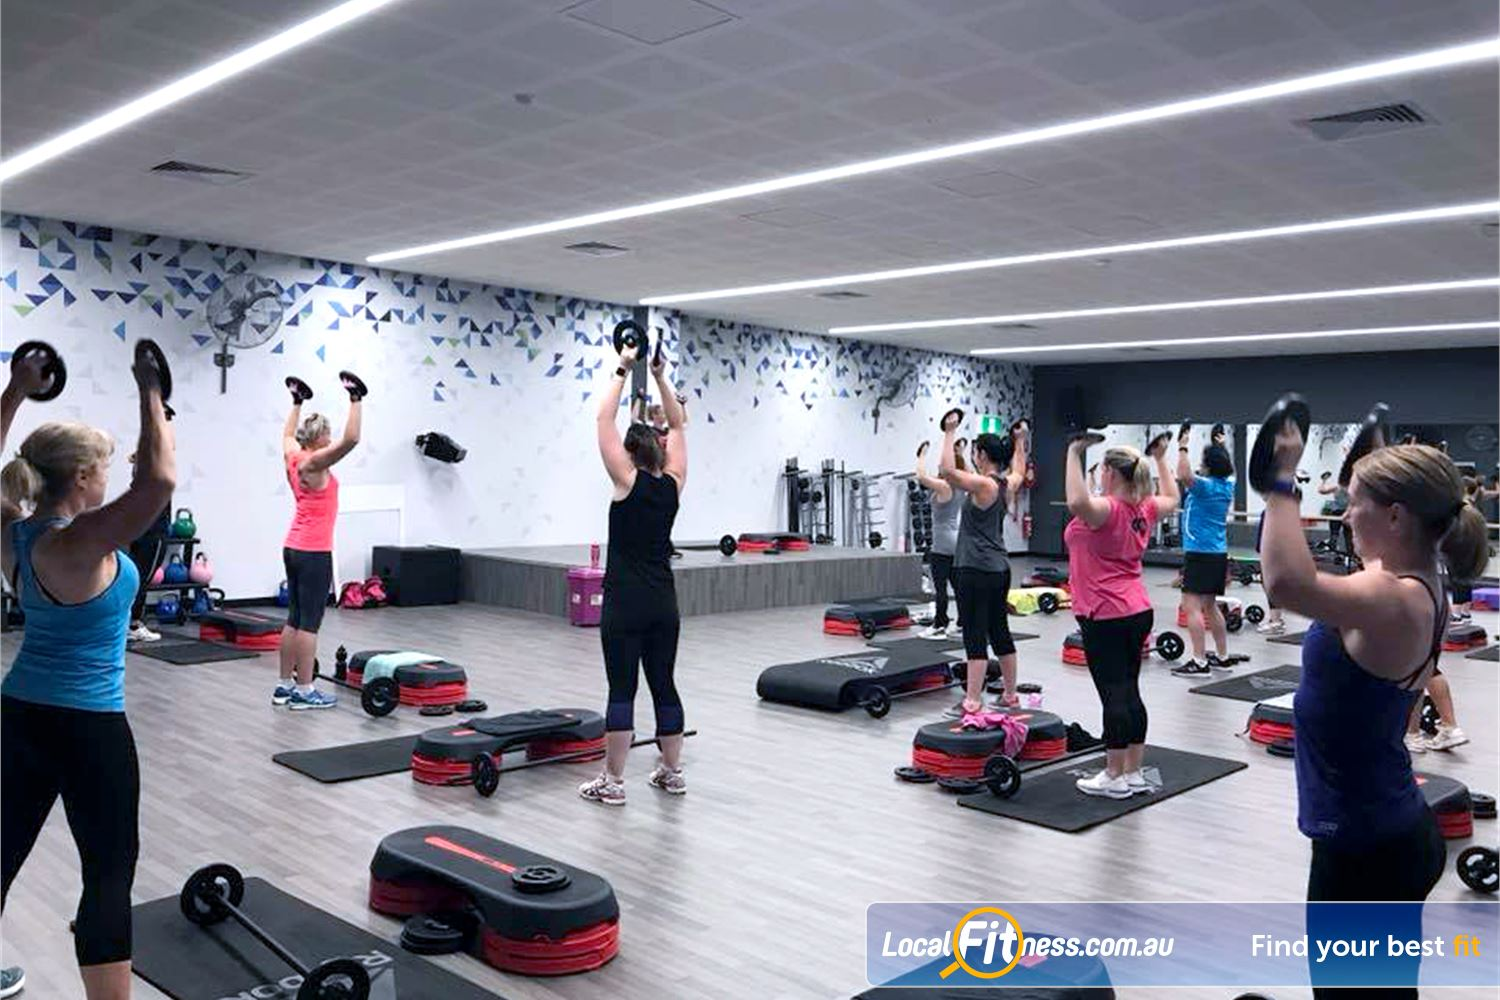 Goodlife Health Clubs Near Seaford The dedicated group fitness studio with over 60 clases per week.